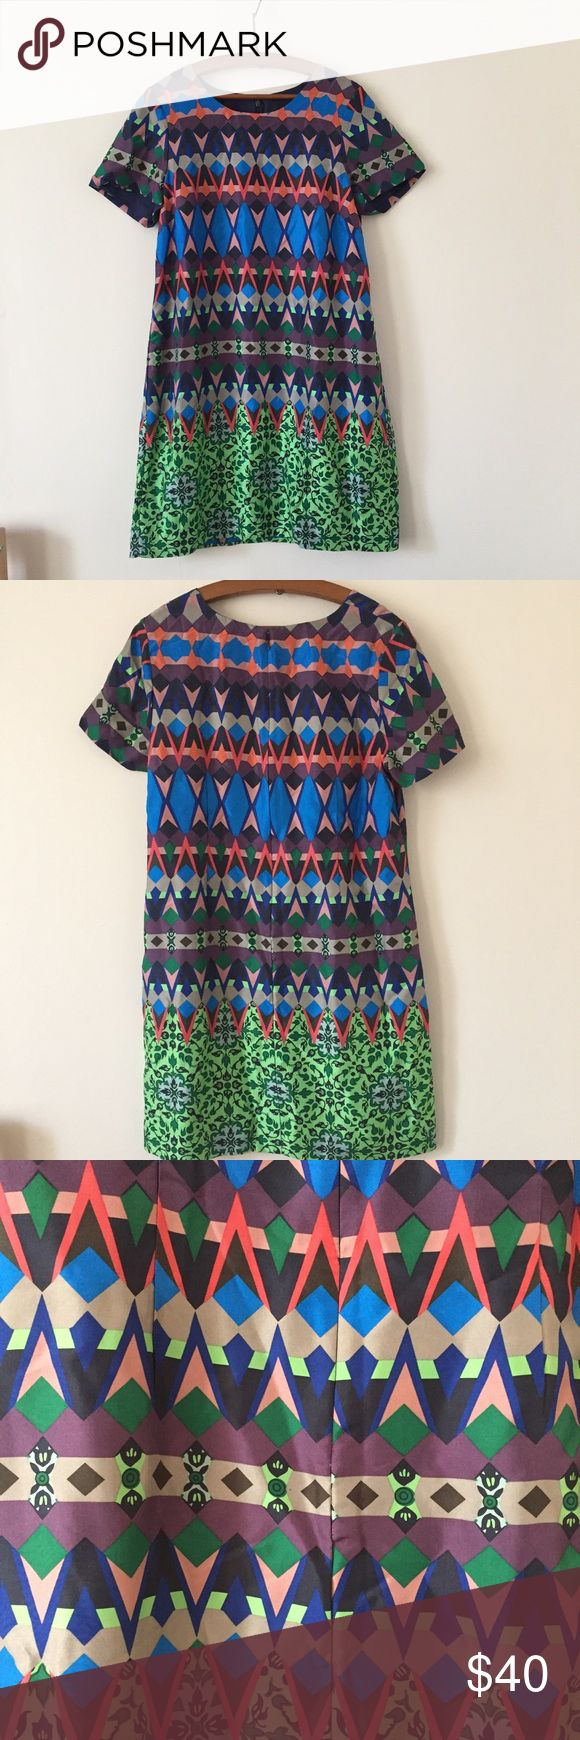 J crew geometric print 100% silk shirt dress Preworn but in excellent condition! J. Crew Dresses